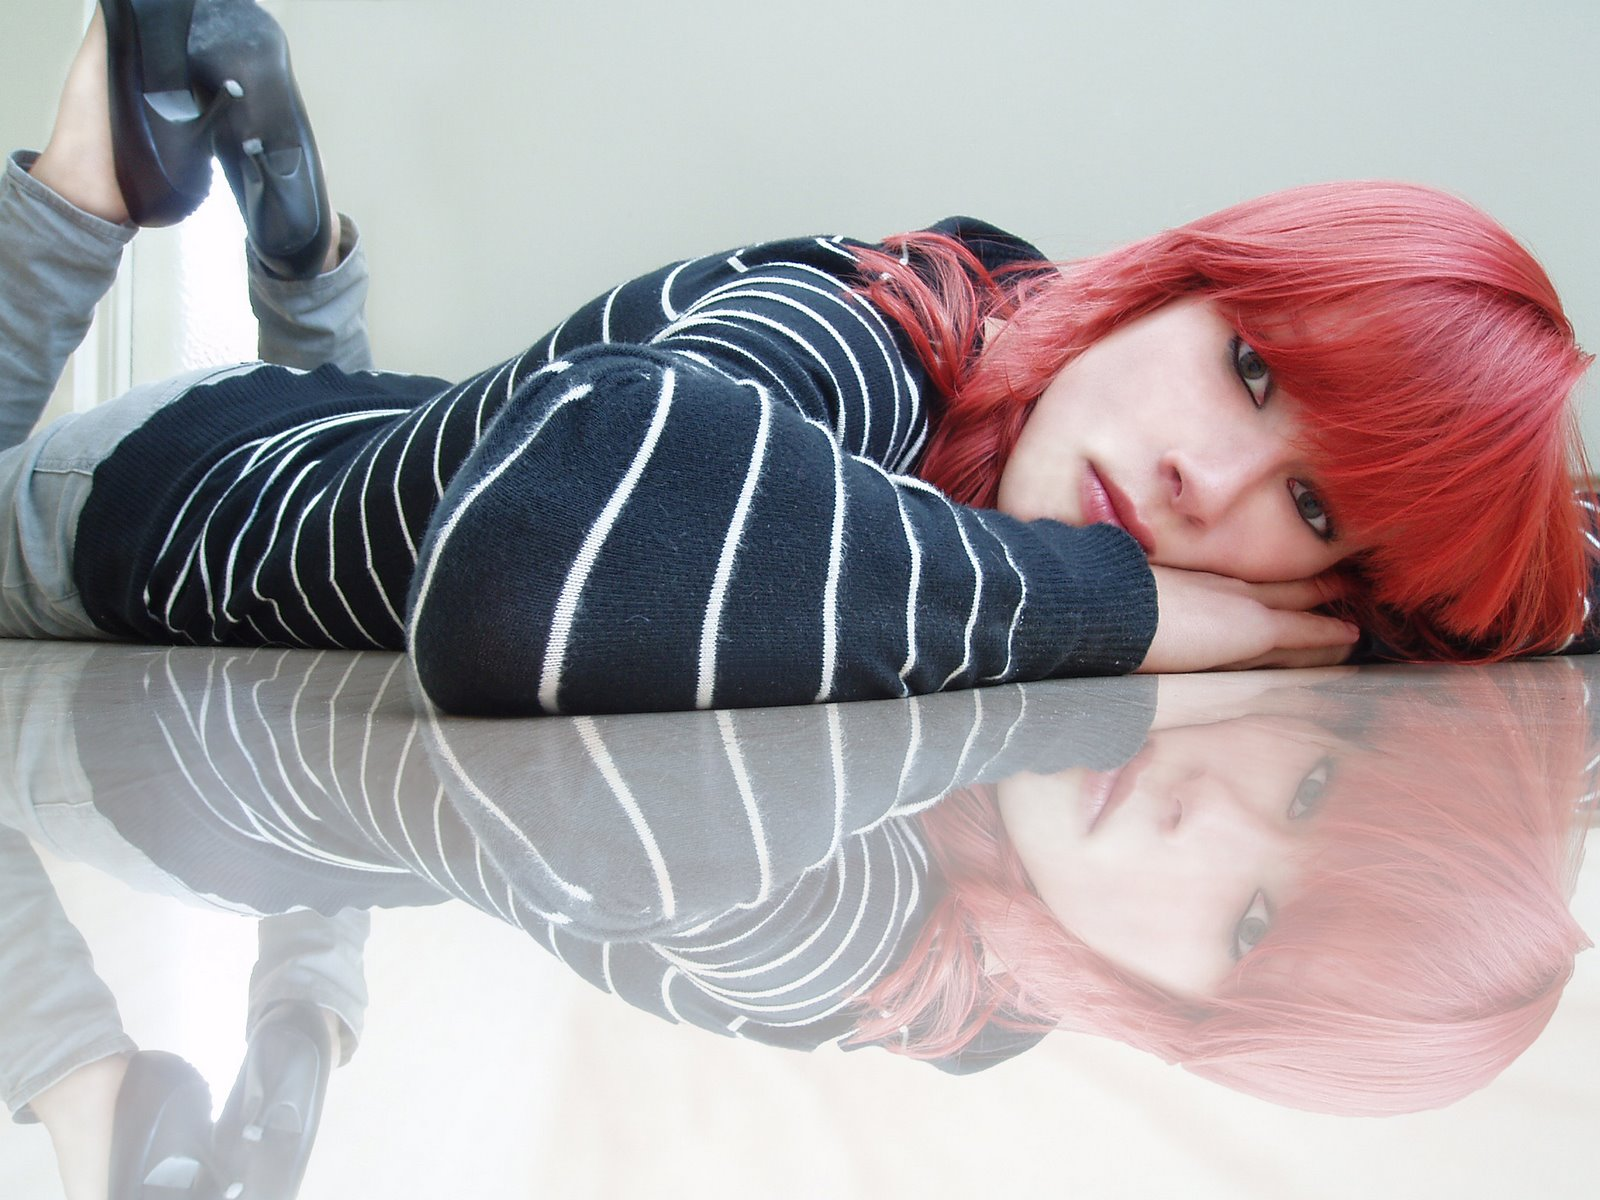 [Lonely_girl_with_red_hair_by_Anszje.jpg]